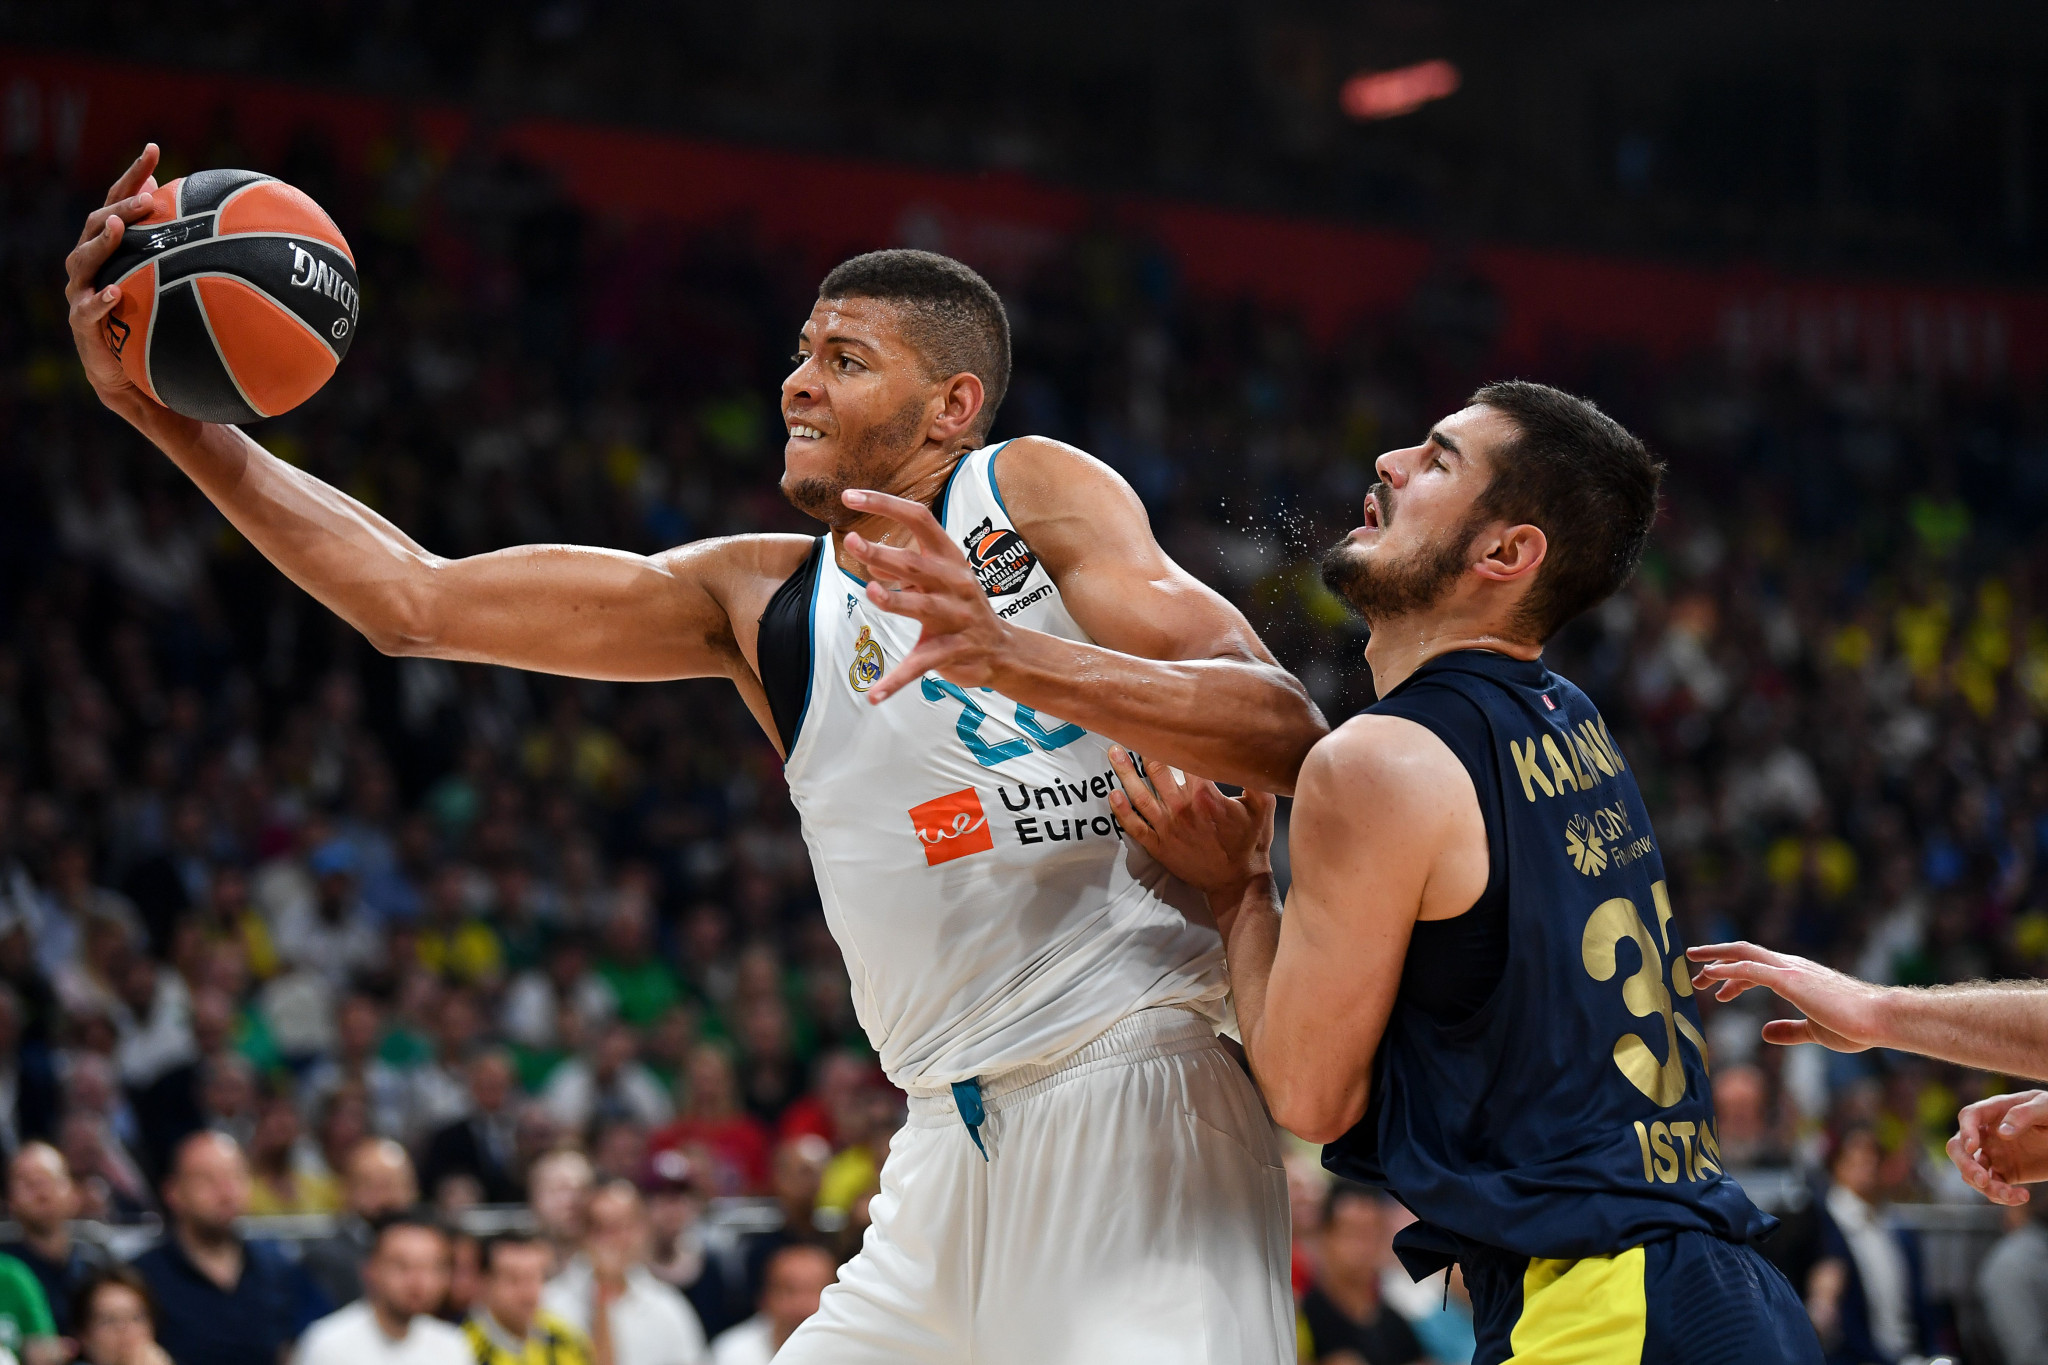 EuroLeague have been locked in a dispute with FIBA over the release of players for qualifiers ©Getty Images